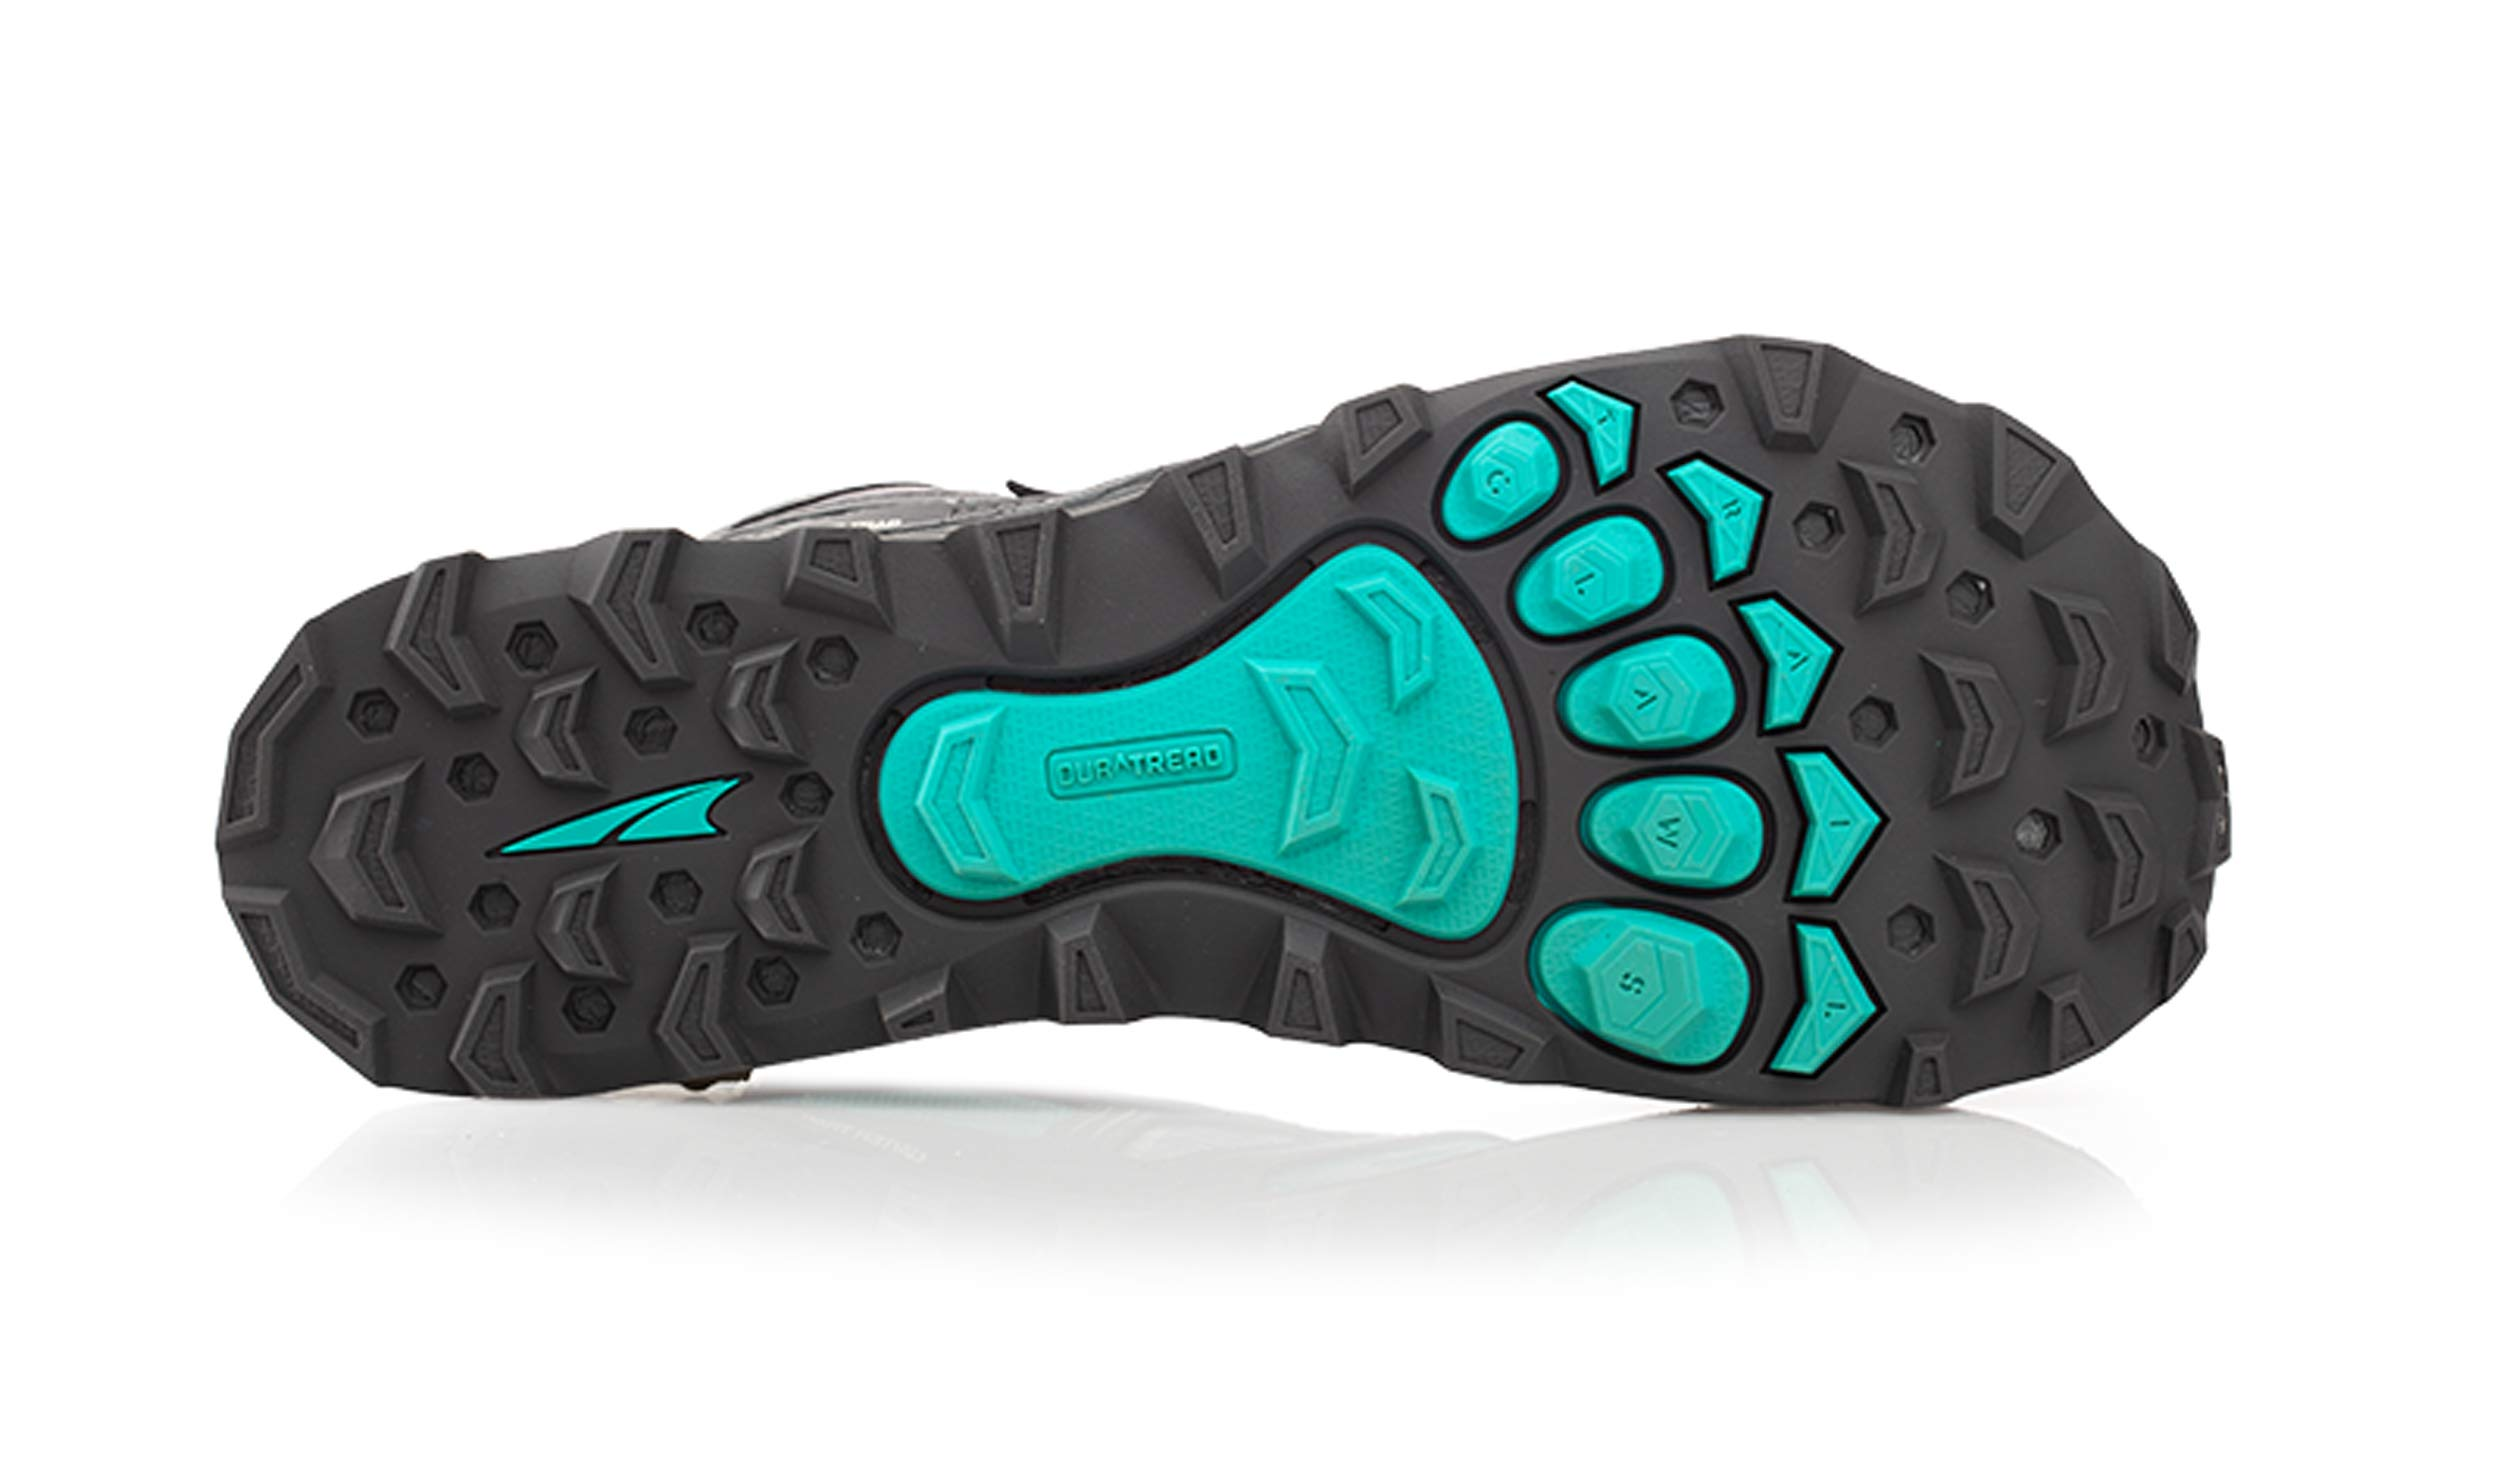 Altra Women's Lone Peak 4 Mid Mesh Trail Running Shoe, Teal/Gray - 6 B(M) US by Altra (Image #4)